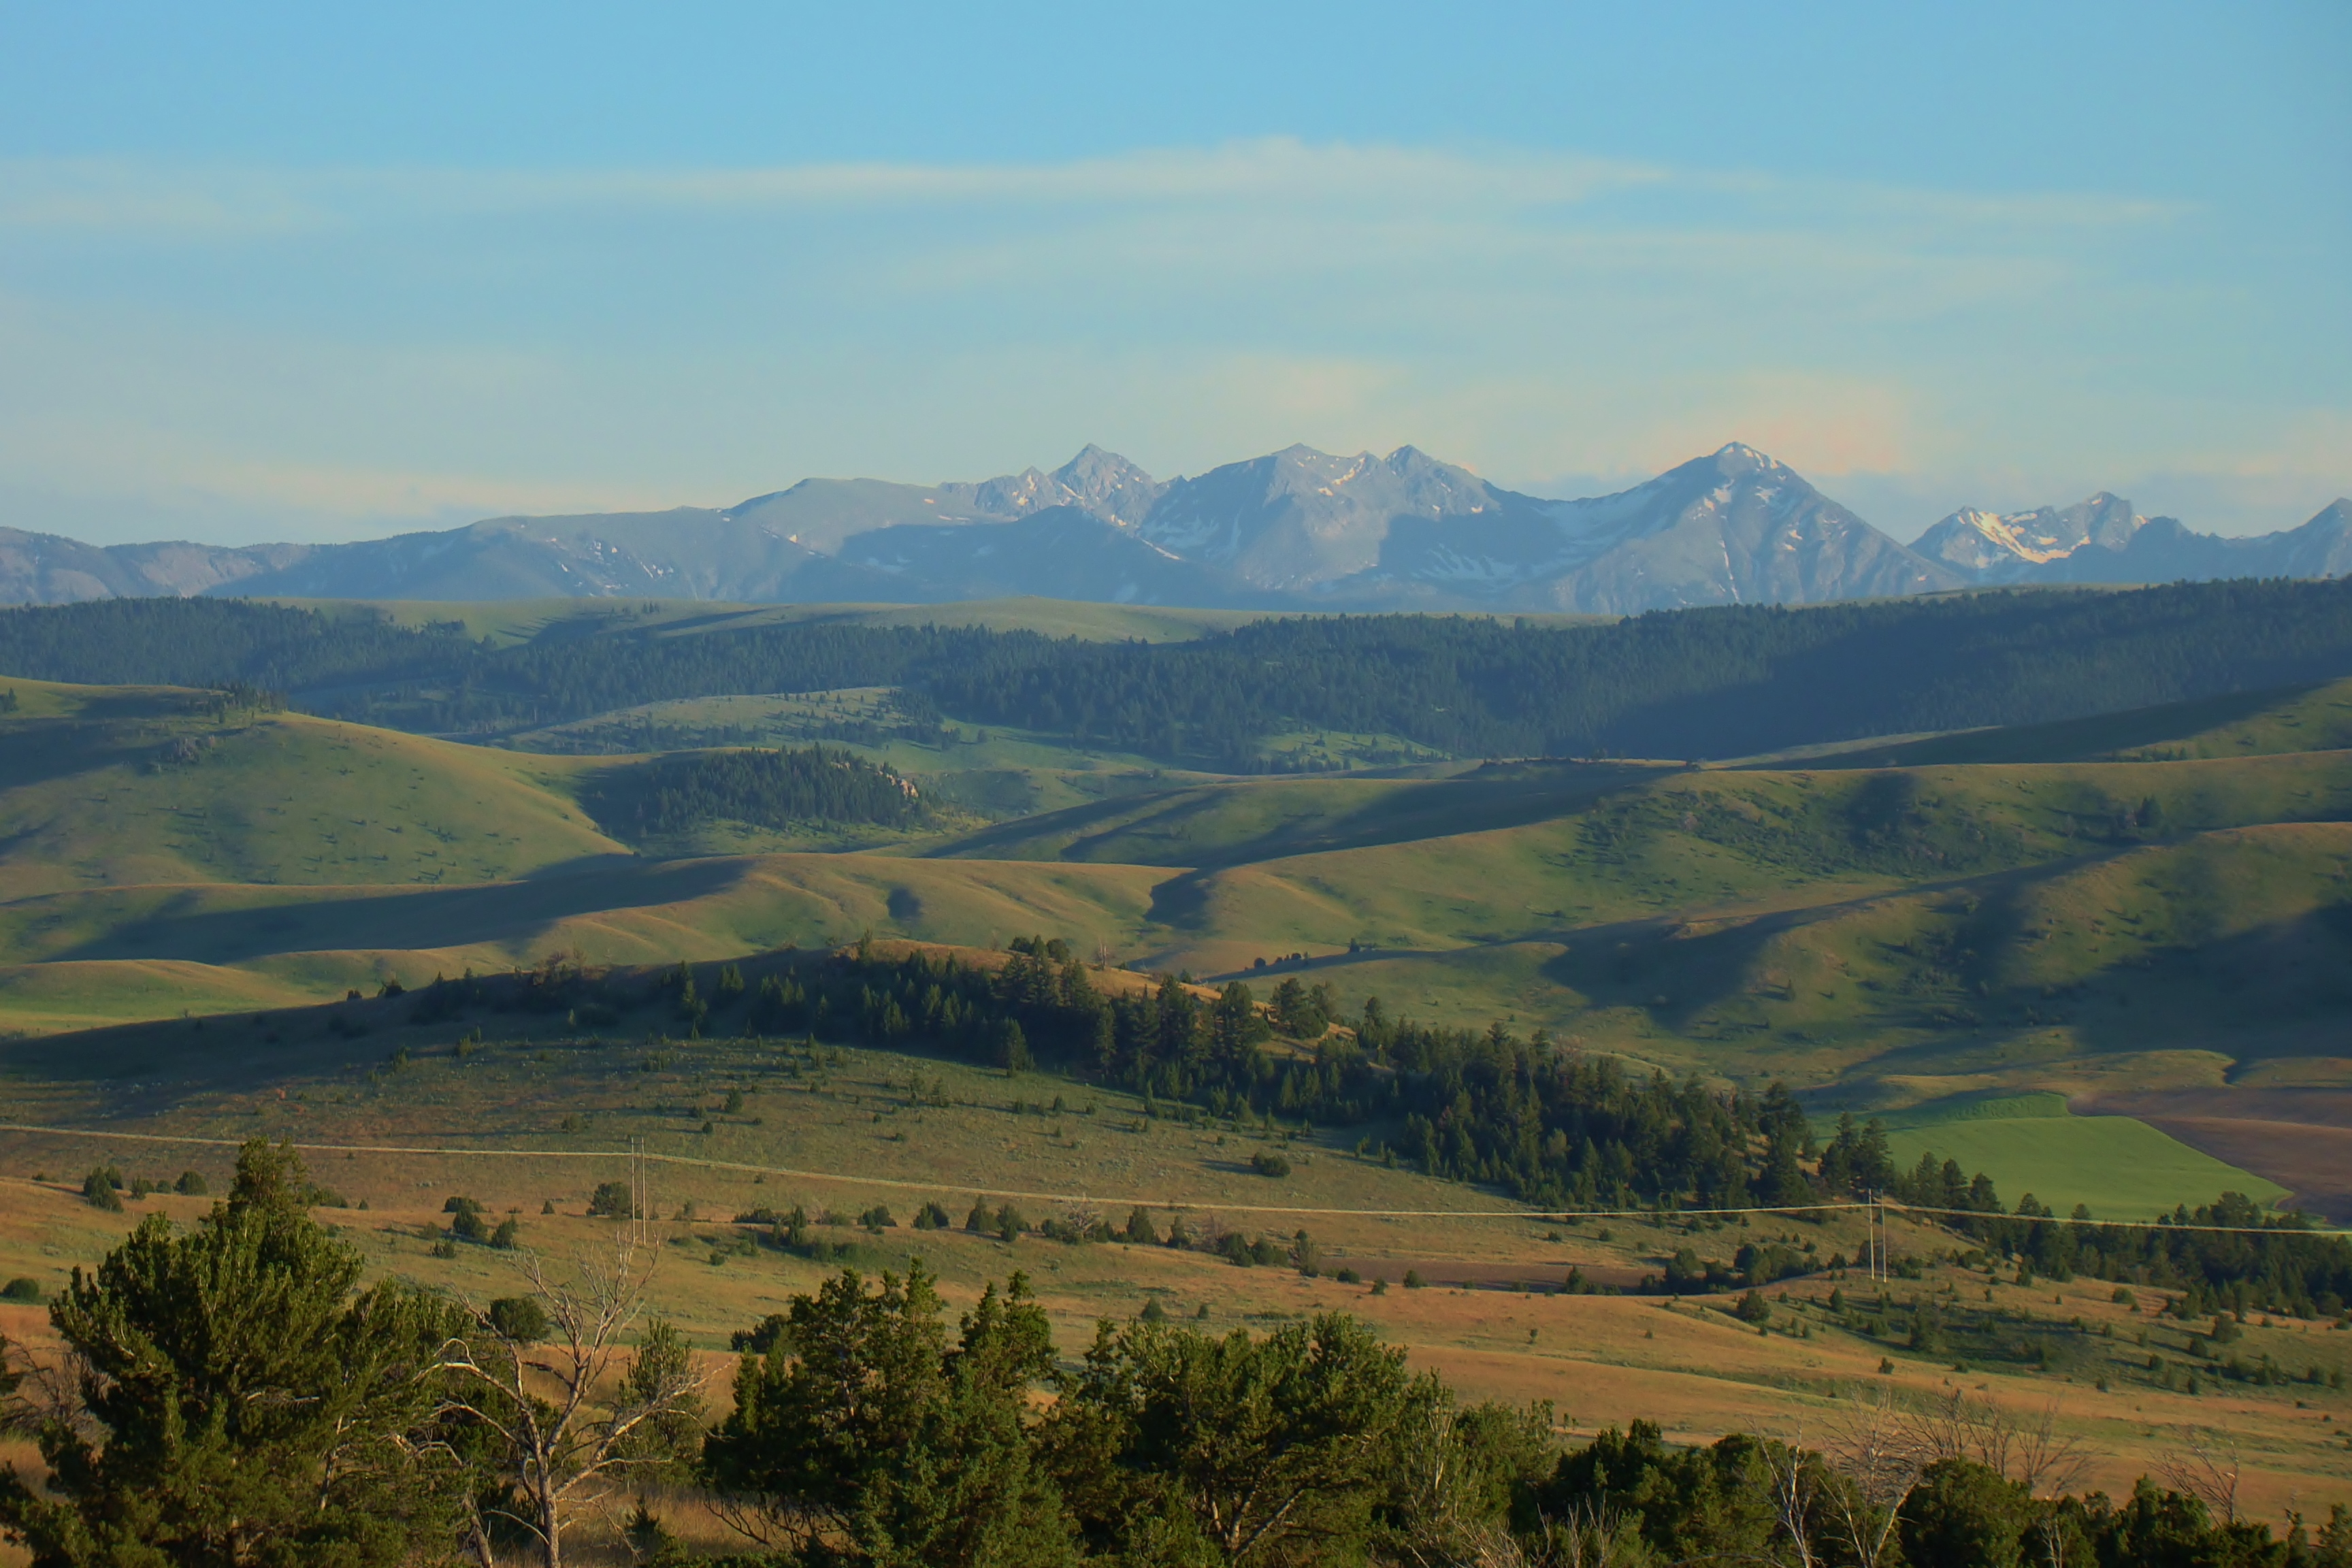 Montana Land for Sale with Impressive Views of the Bridger, Spanish Peaks, and Tobacco Root Mountain Ranges